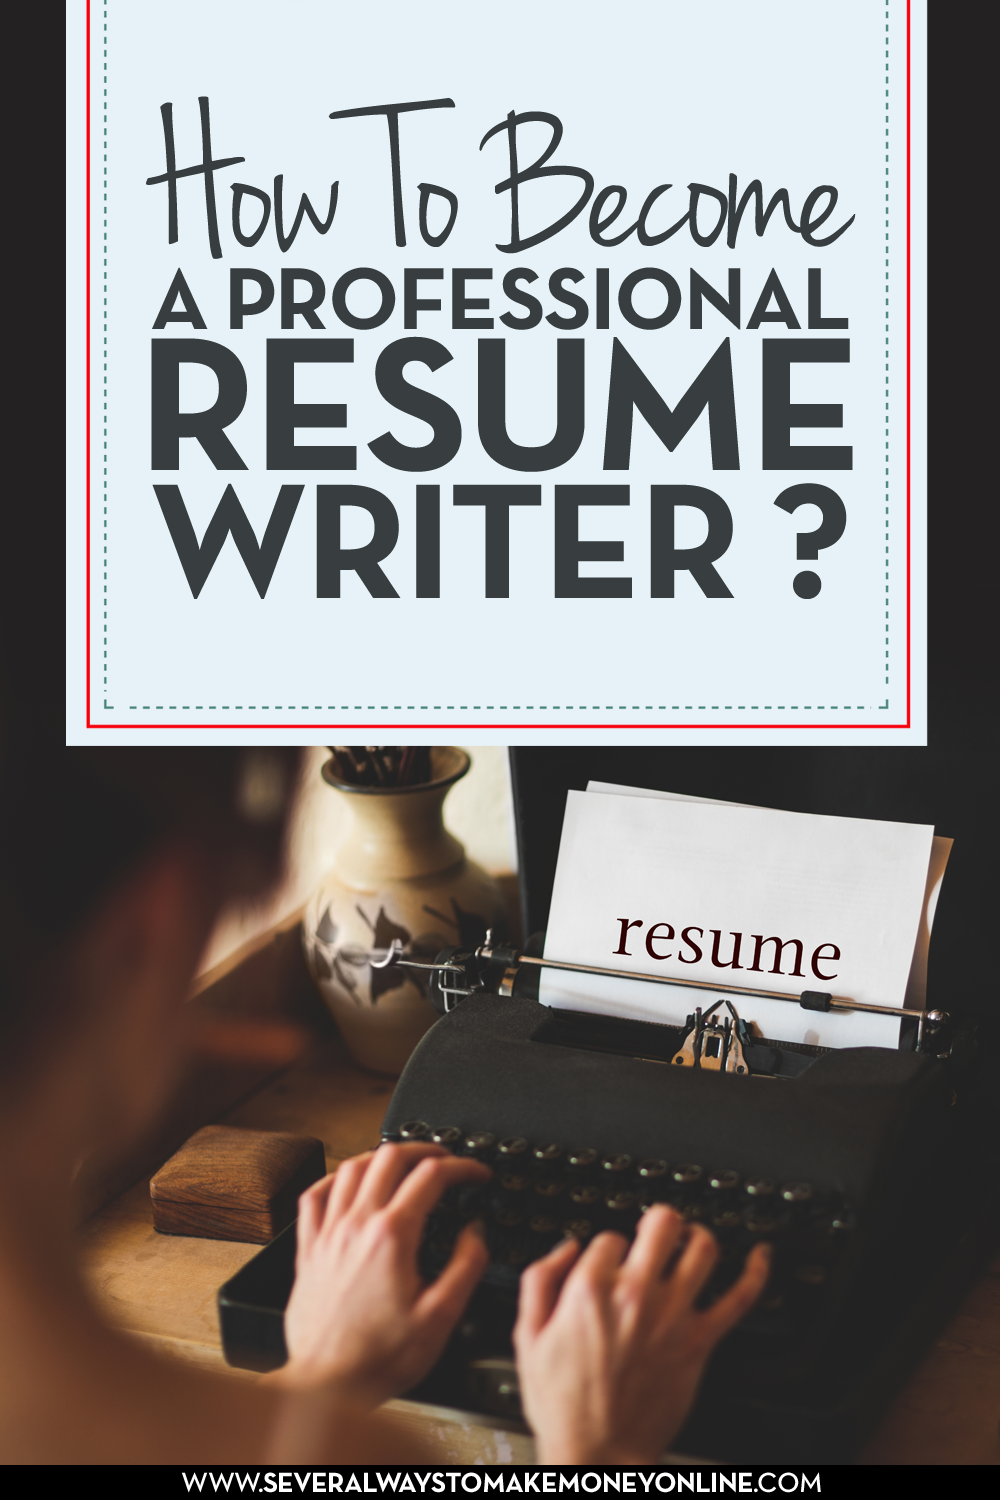 Learn how to become a professional resume writer. Resume writing is ...